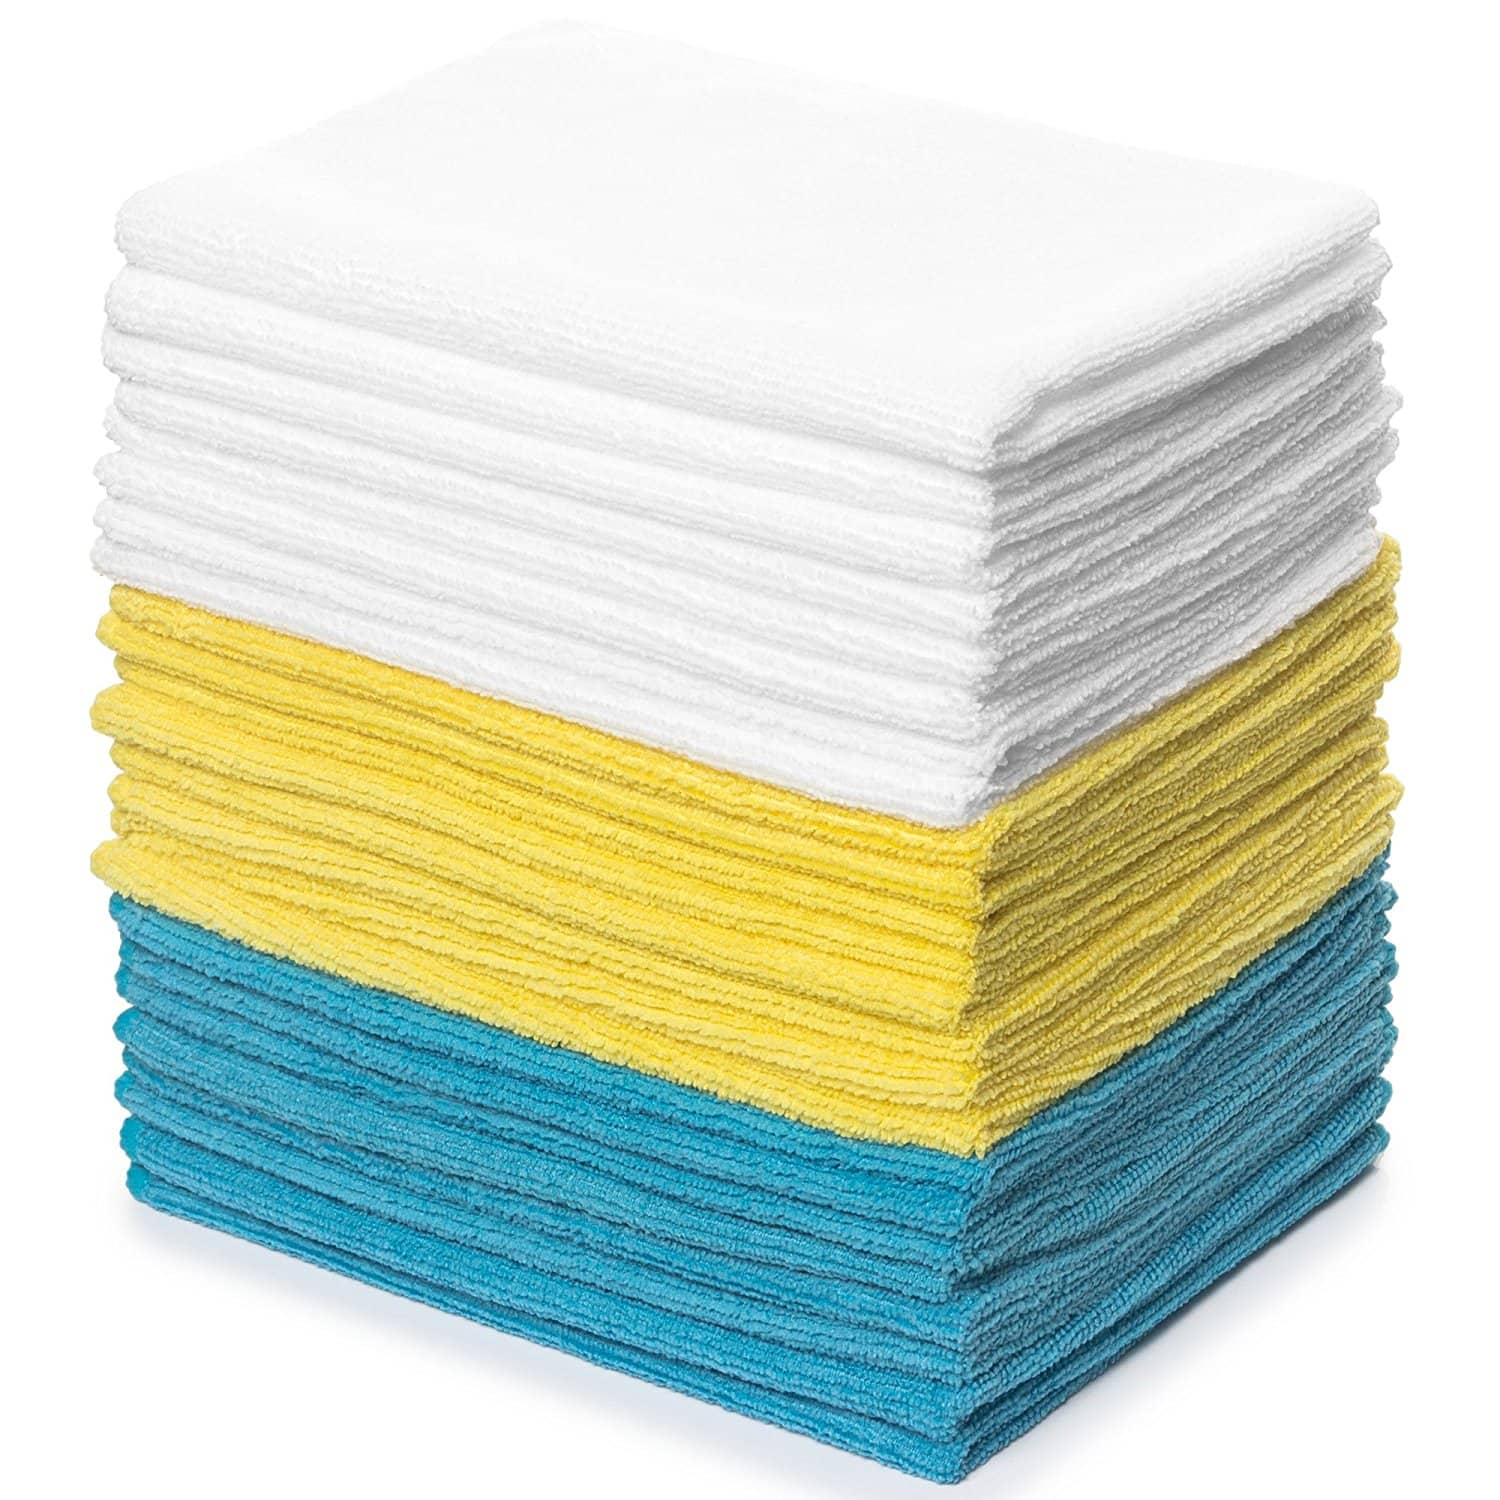 Royal Reusable Microfiber Cleaning Cloth Set - 12 x 16 Inch Microfiber Cloth - 24 Pack $8.97